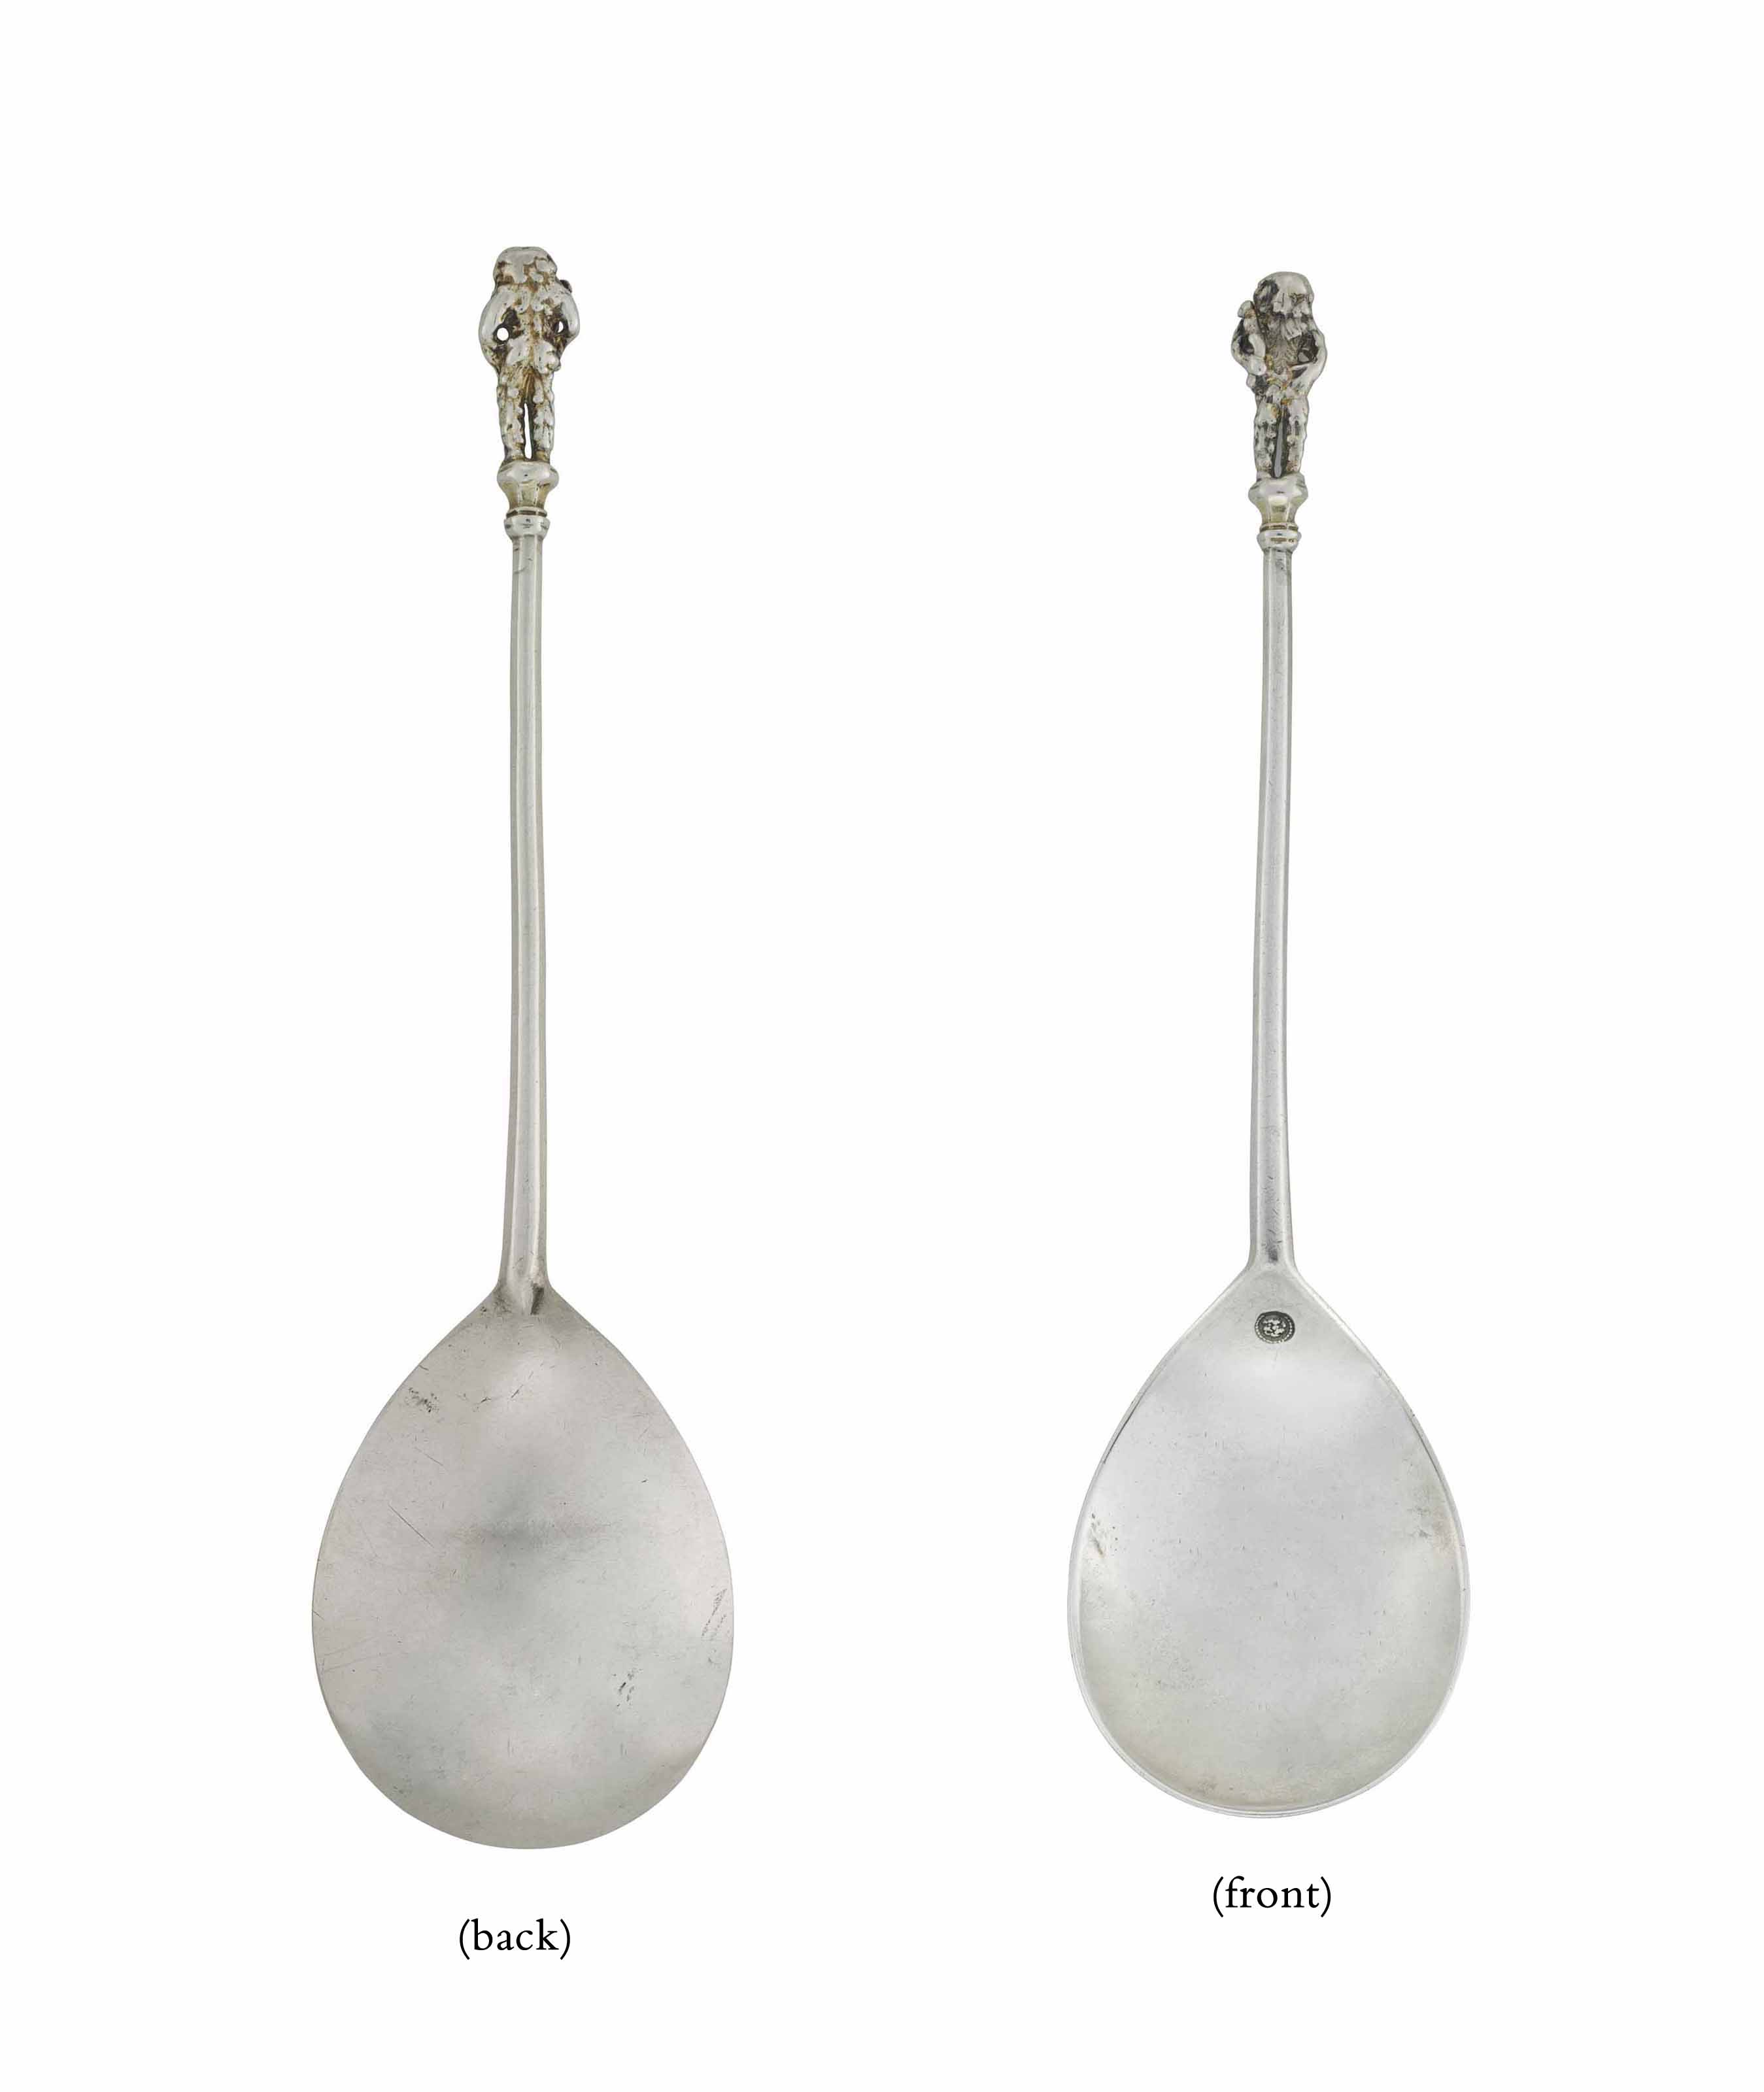 Electro-plate Silver Engraved Tea Caddy Spoon Good Heat Preservation United Kingdom Silver Lovely English 19th C